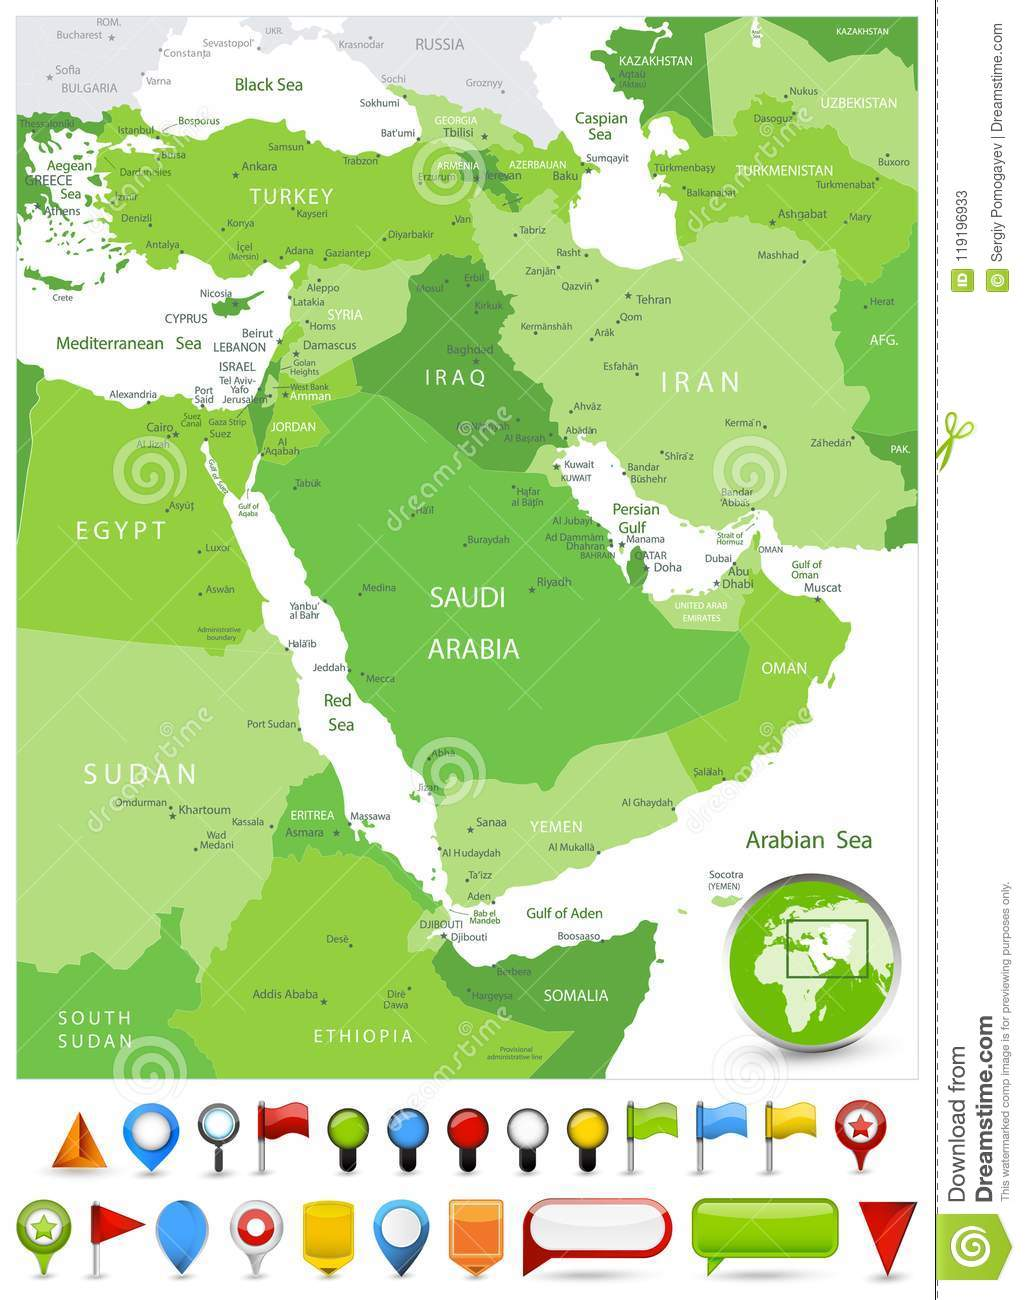 Tehran Middle East Map.Middle East Map Spot Green Colors And Glossy Icons Stock Vector